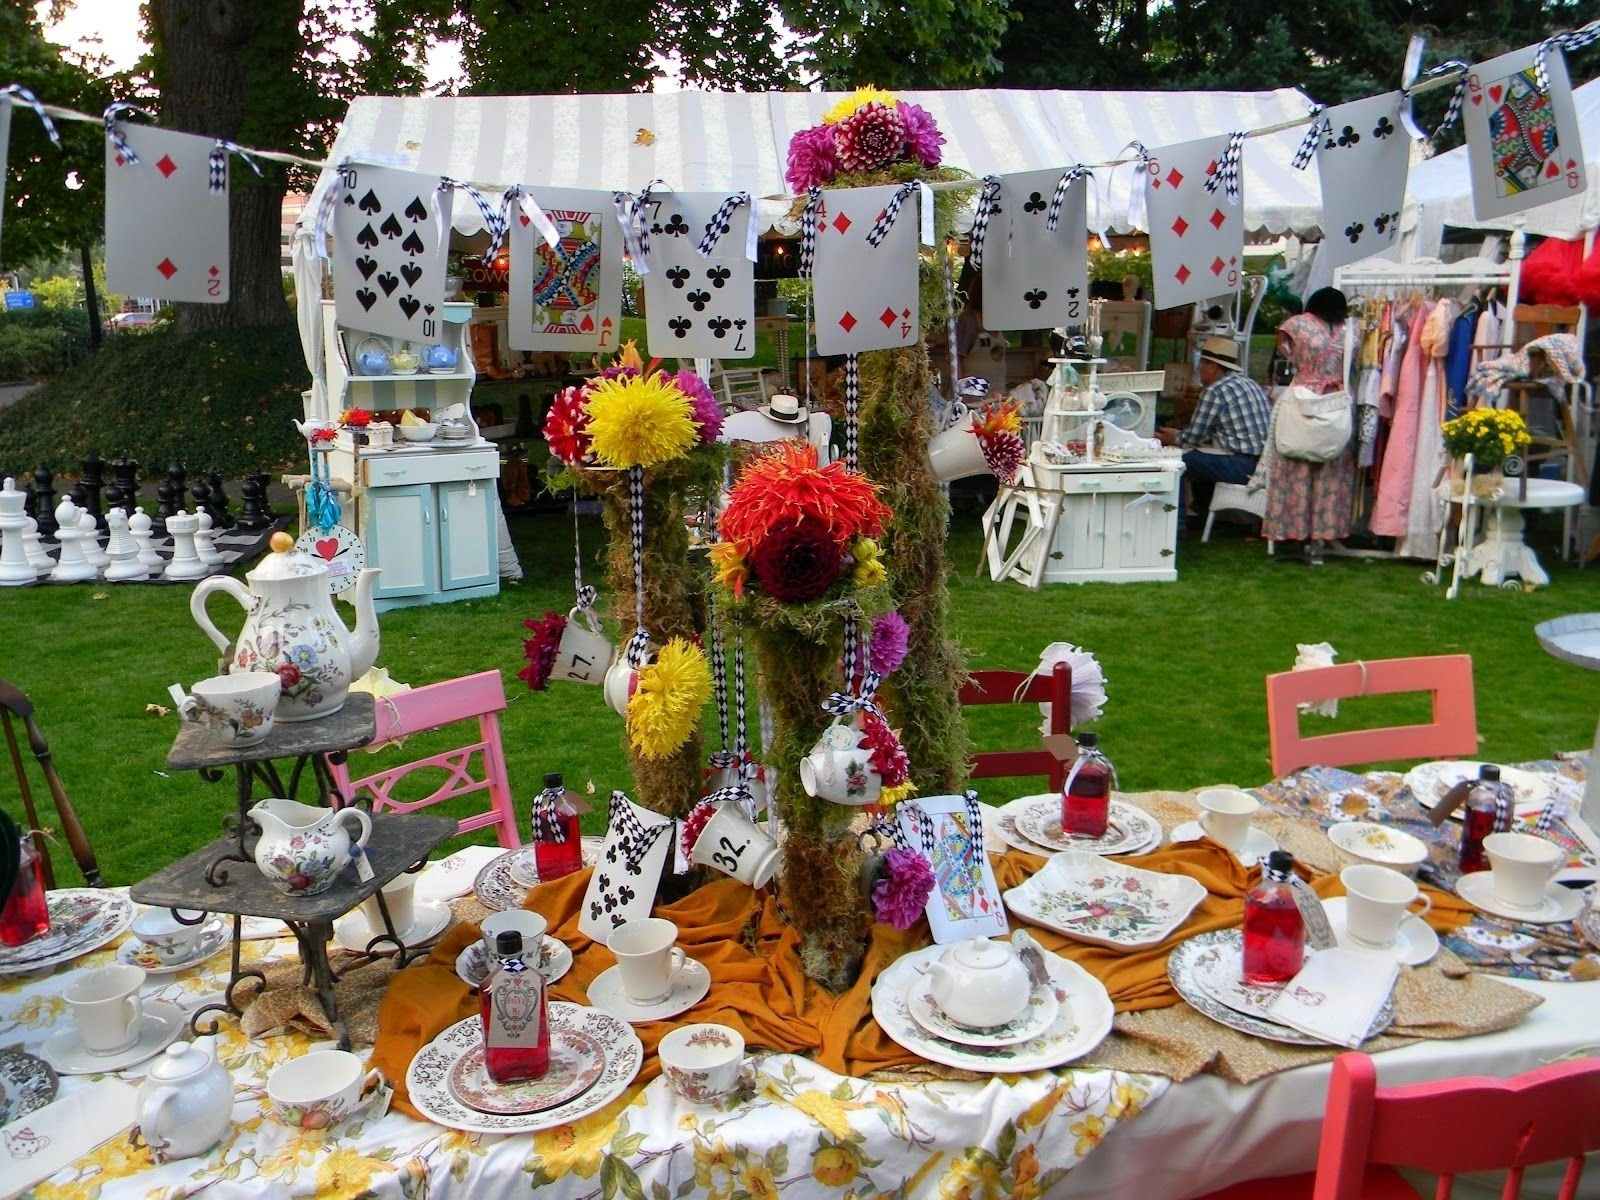 decor for mad hatter's tea party: chess pieces and cards. also